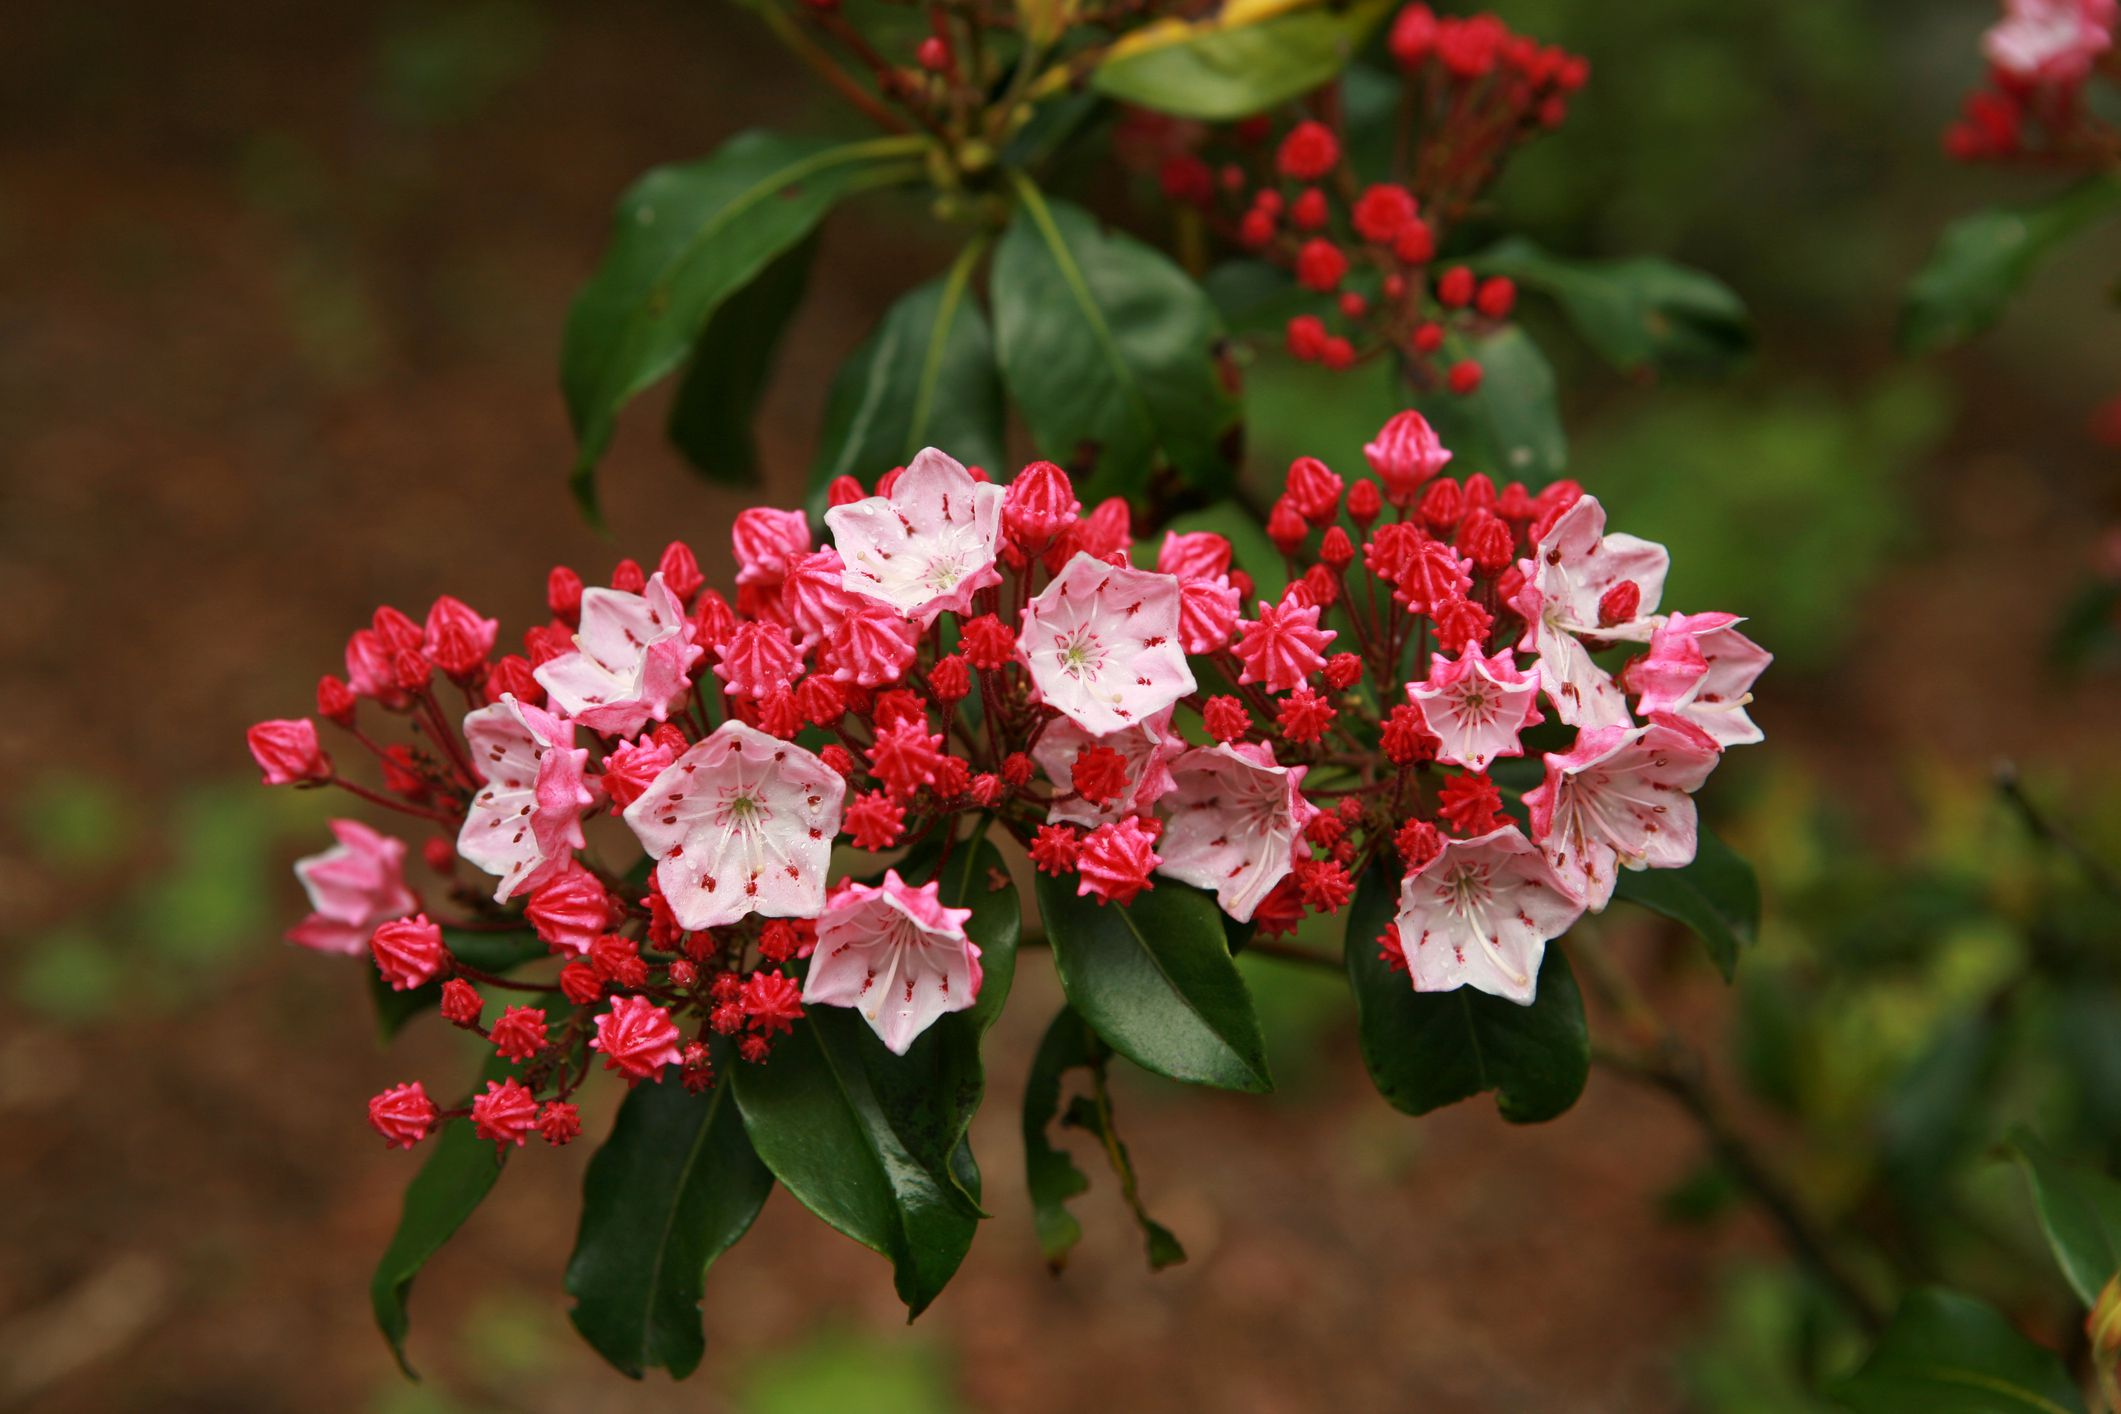 How To Grow And Care For Mountain Laurel Shrubs